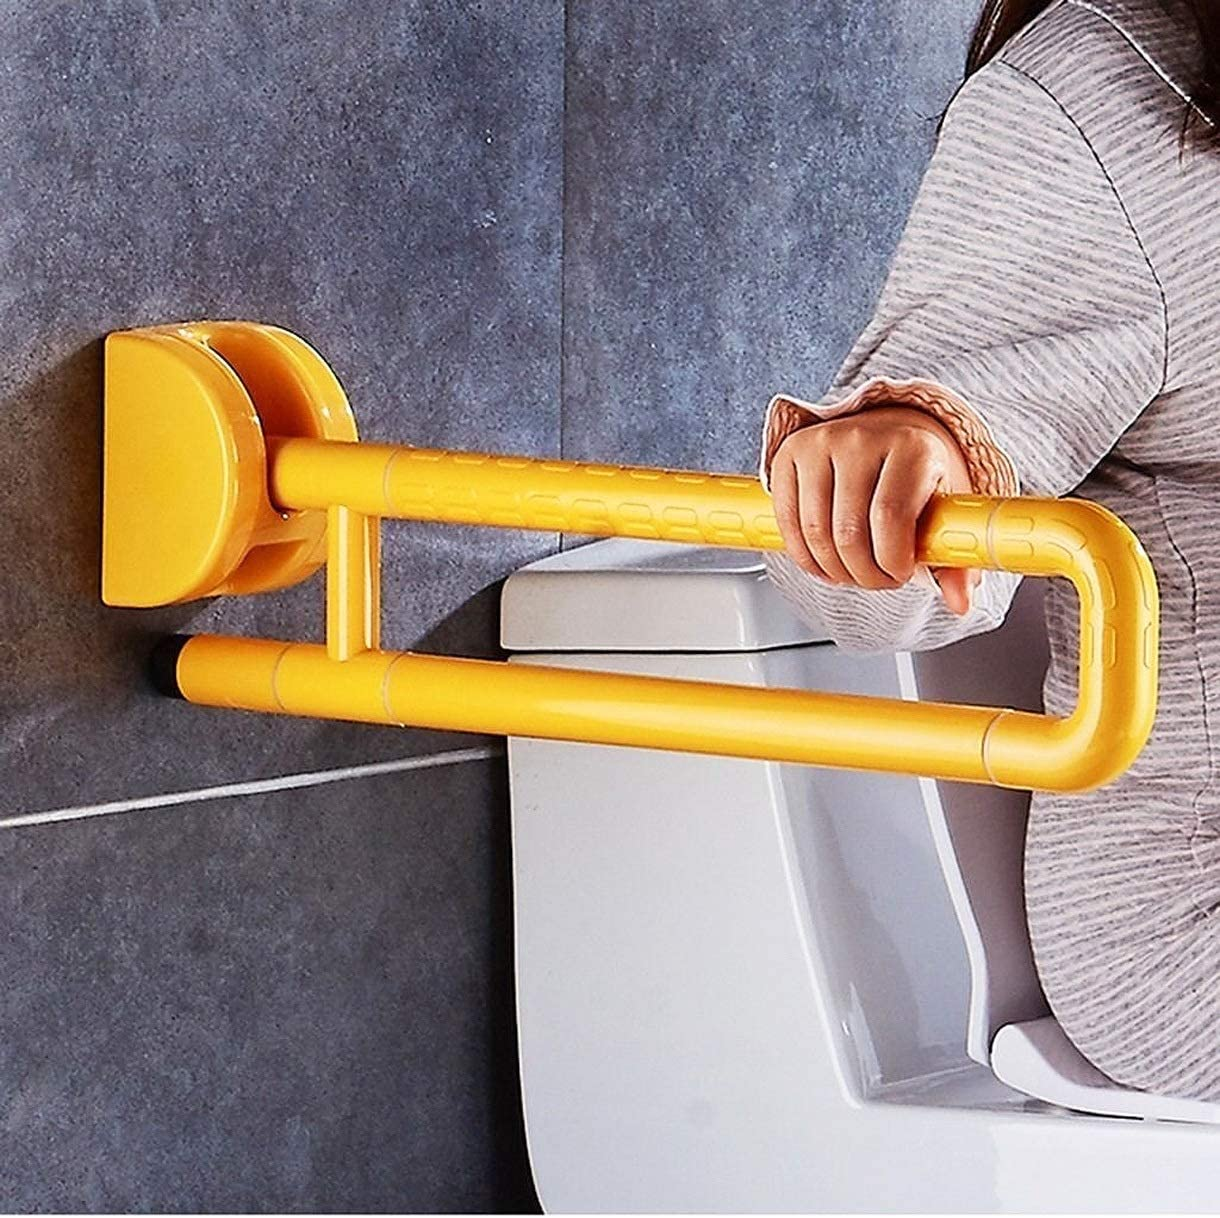 Bathroom Max 41% OFF Grab Bar Safety Support Rail Stainl free shipping